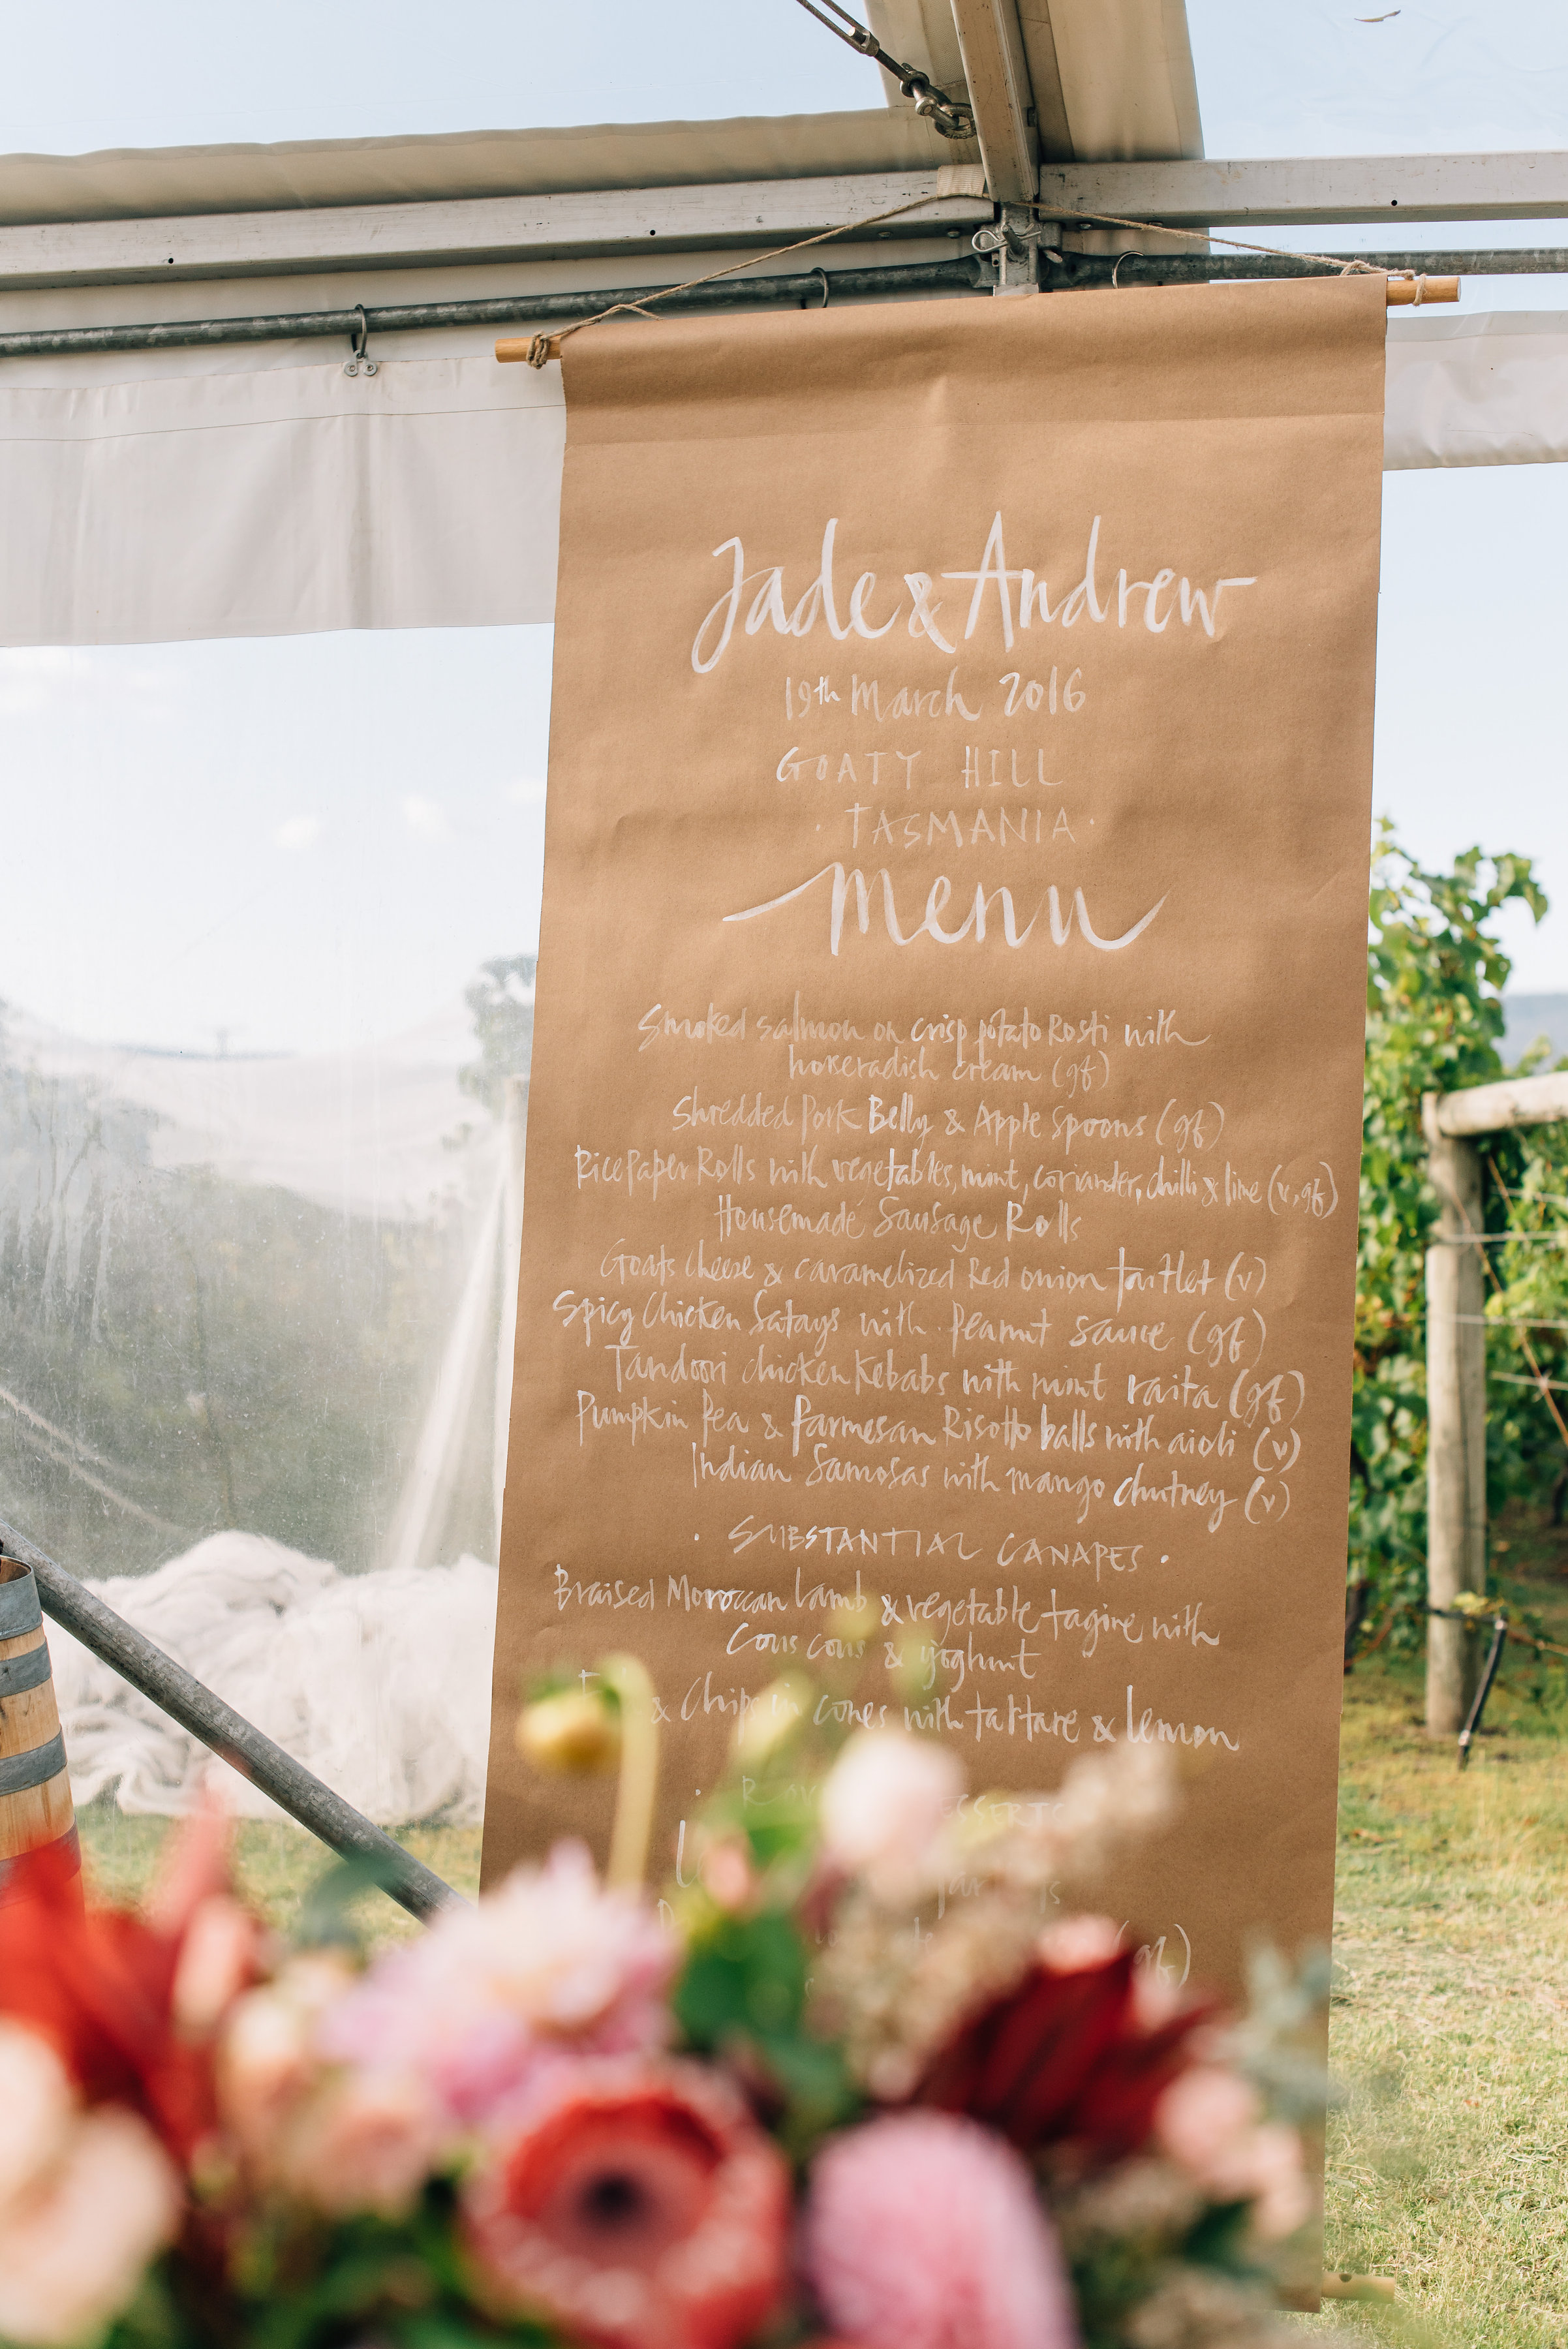 Hand written menu for the wedding reception at Goaty Hill